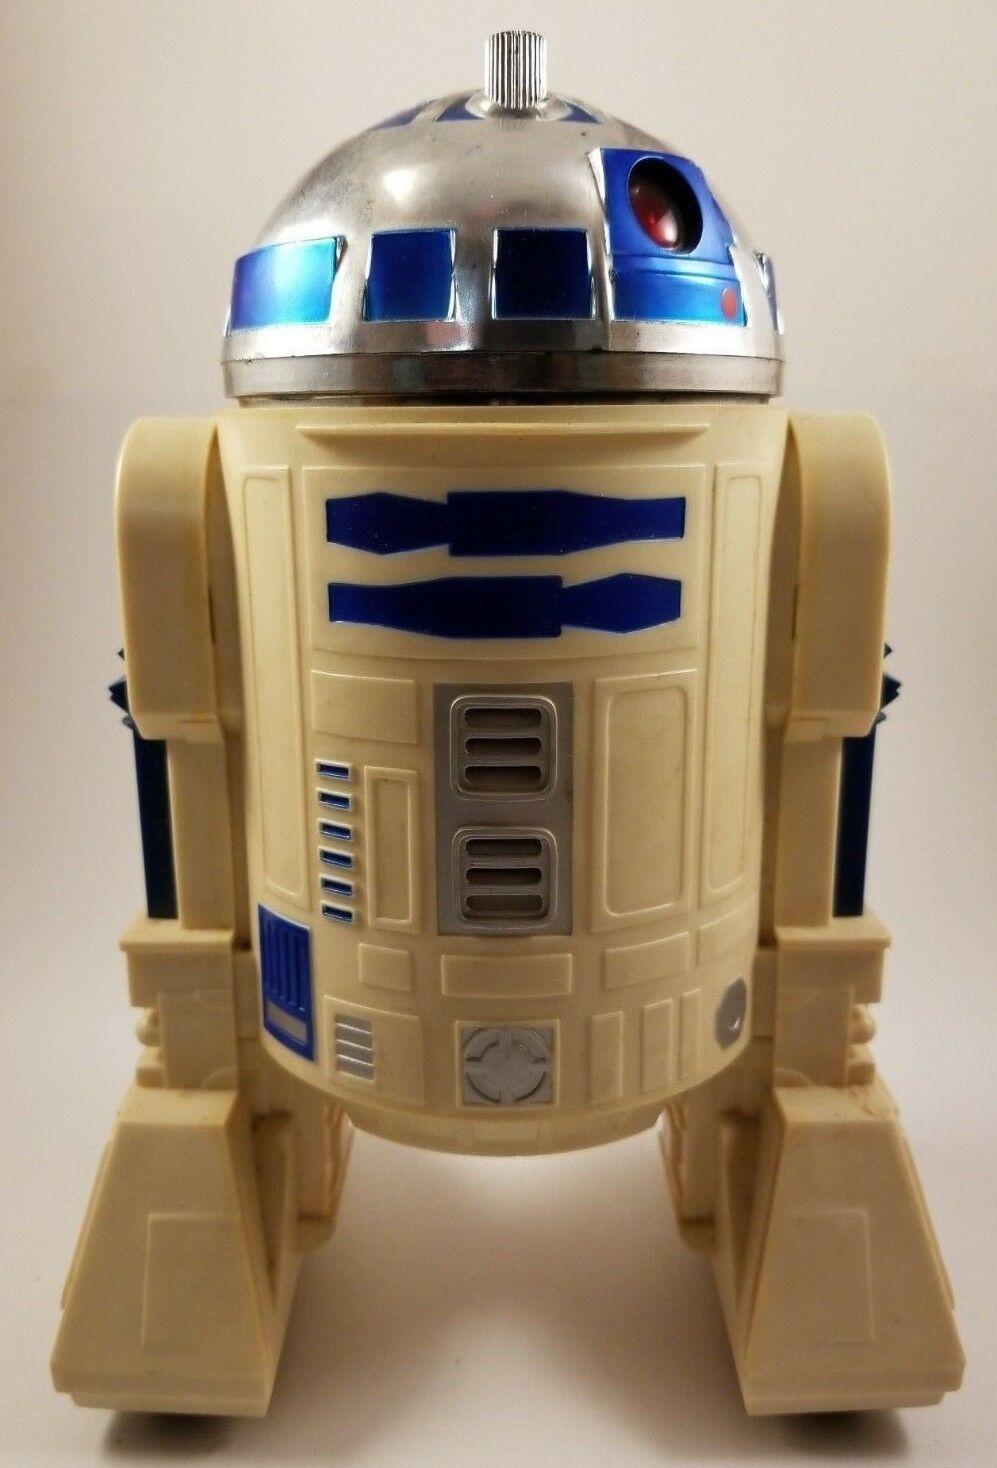 Vintage Star Wars ANH 1978 - Electronic R2-D2 R2-D2 R2-D2 Remote Control Toy - No Remote 6f6e67